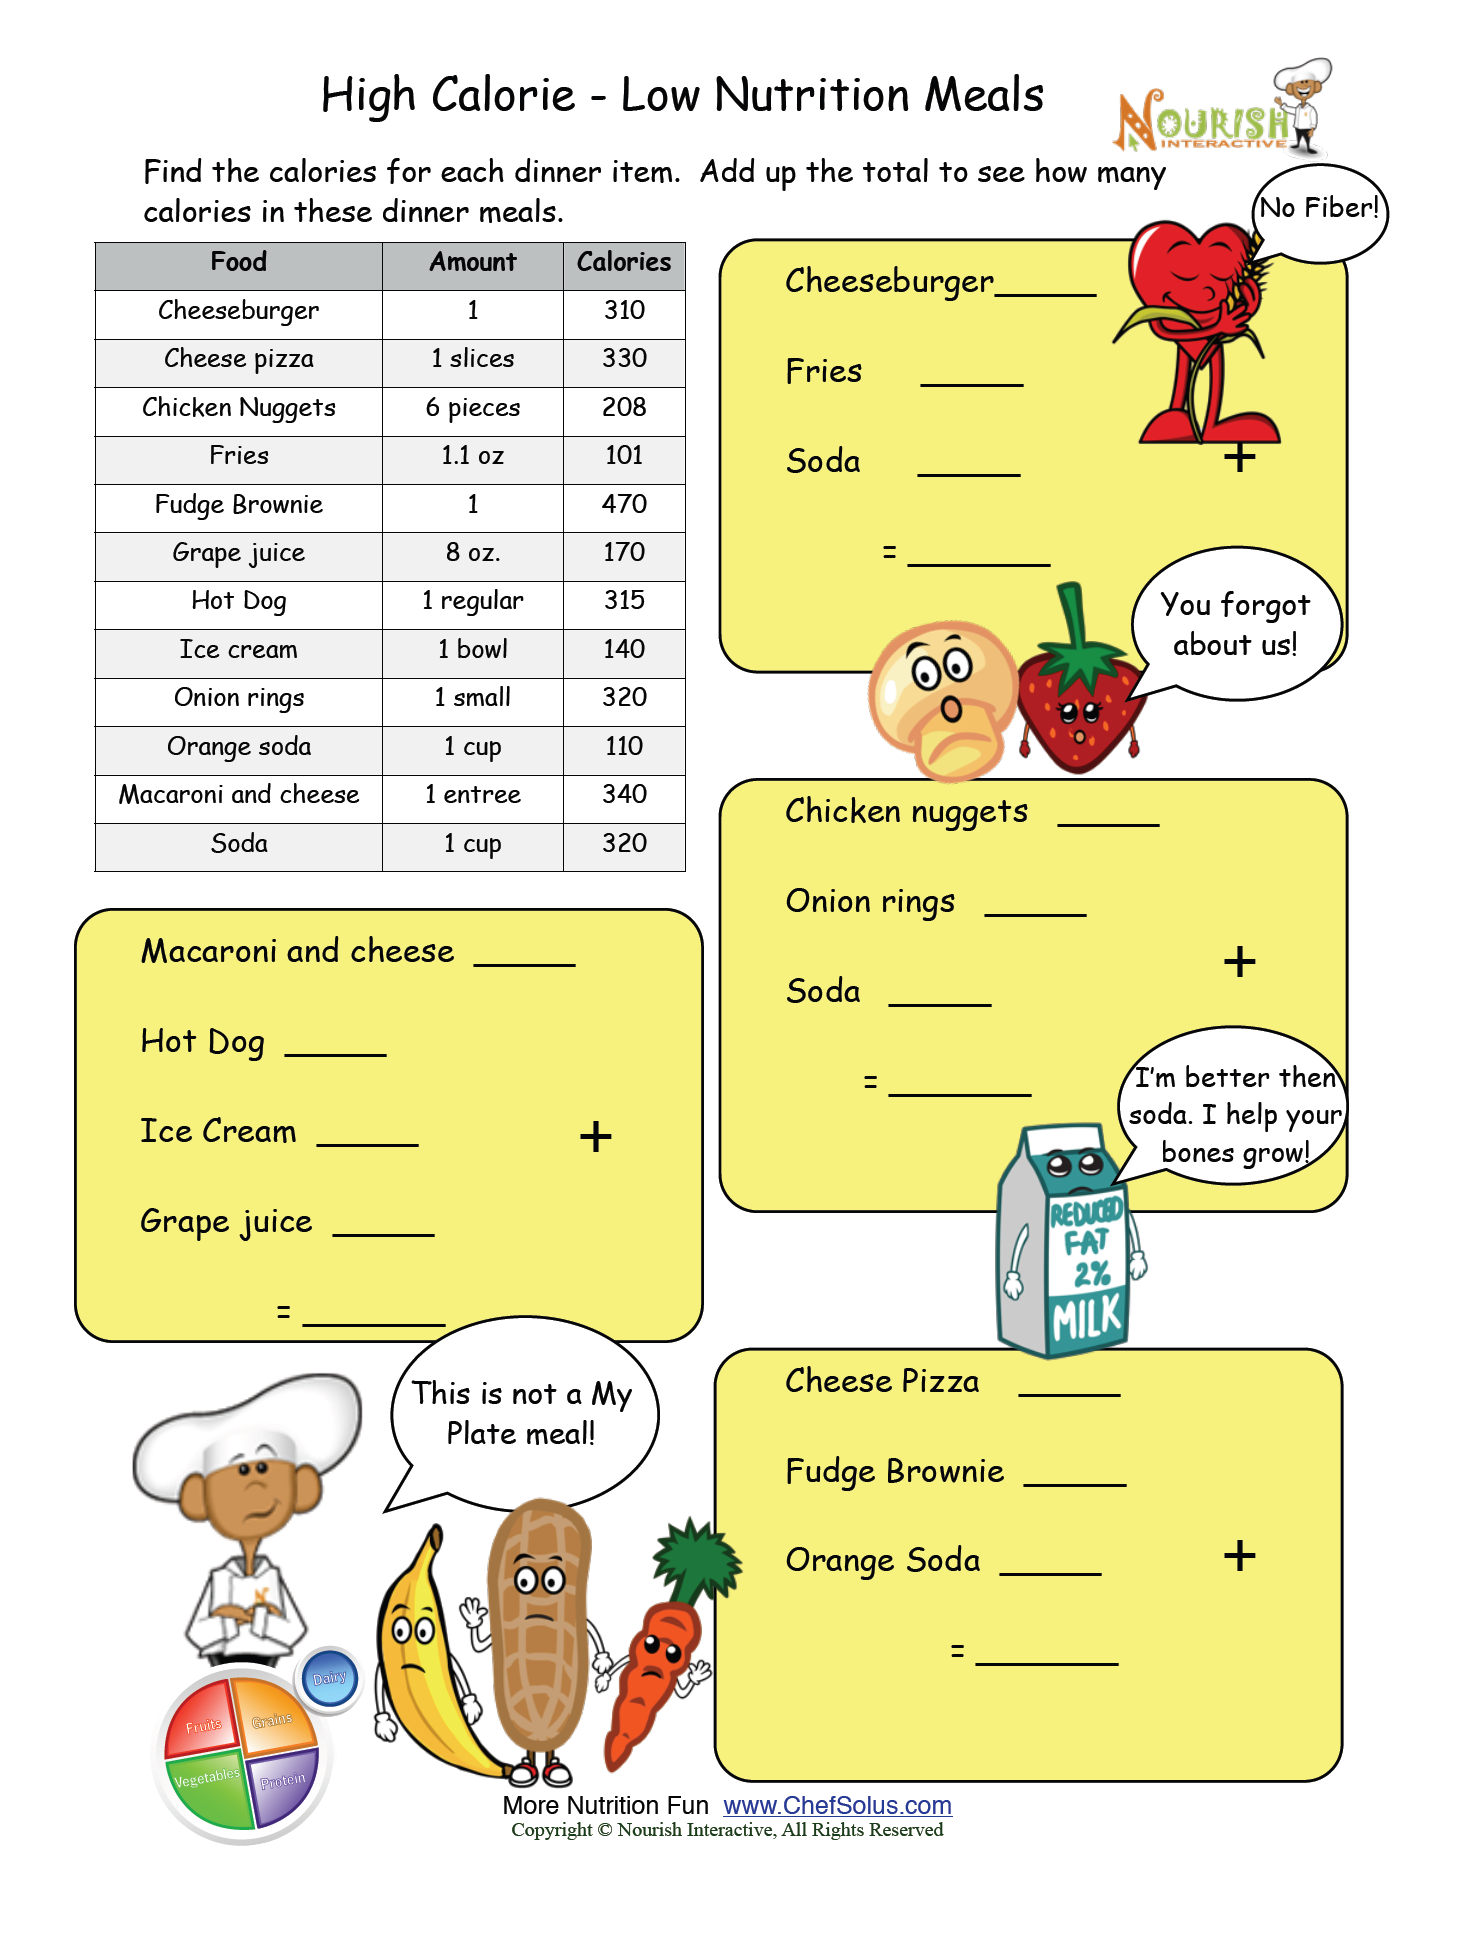 High Calorie Low Nutrition Meal Math Worksheet Please